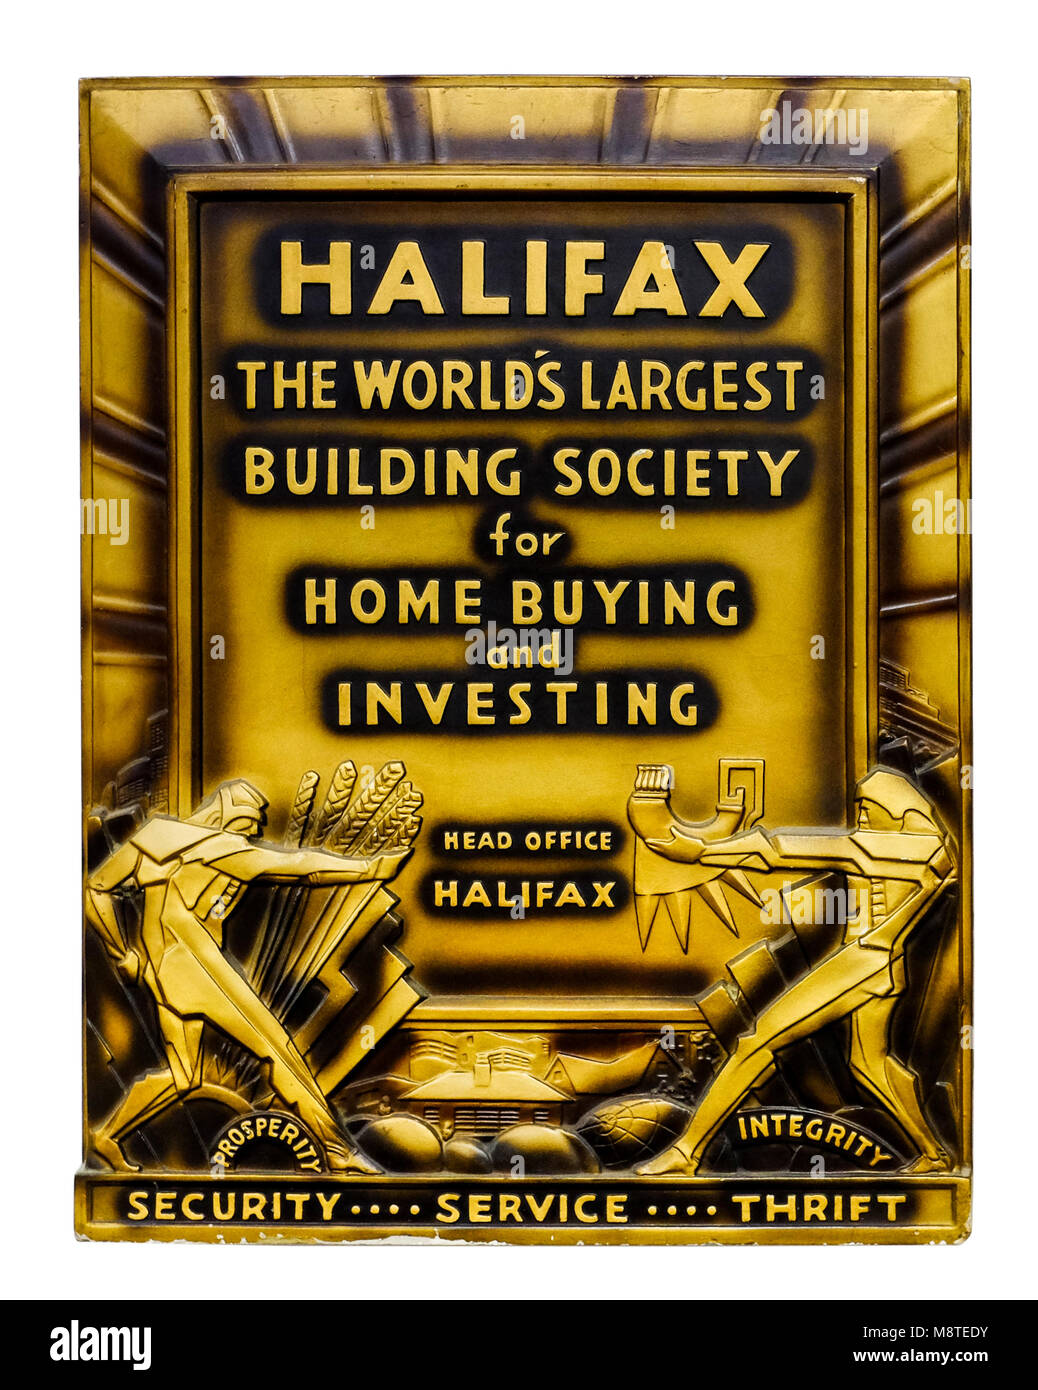 Art Deco advertising / promotional wall plaque for the Halifax Building Society (now part of Lloyds Banking Group). - Stock Image